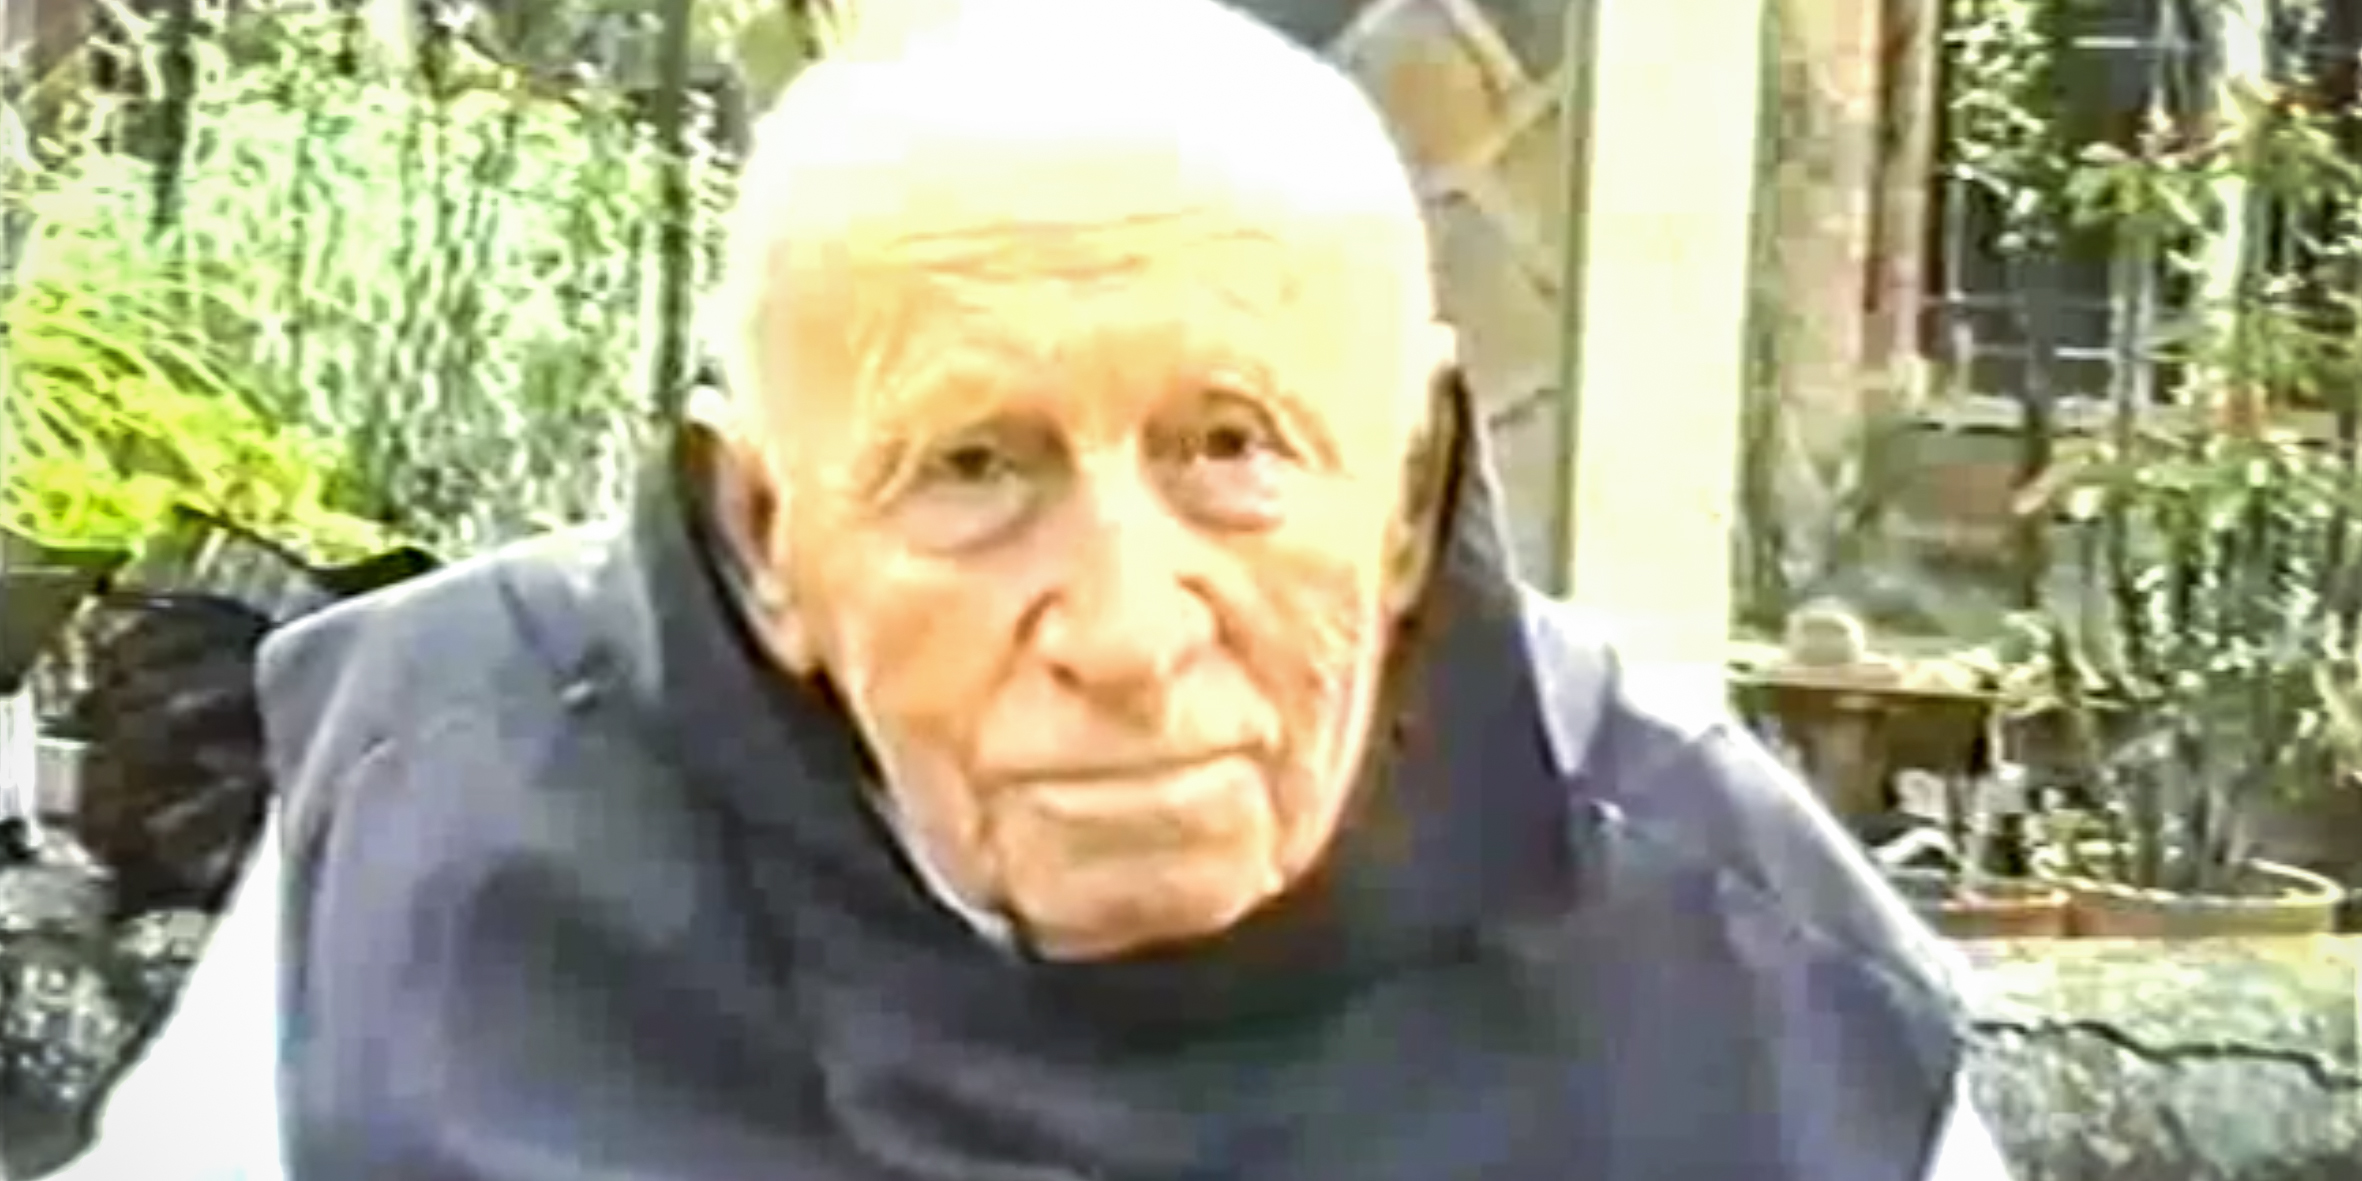 FATHER PAOLINO BELTRAME